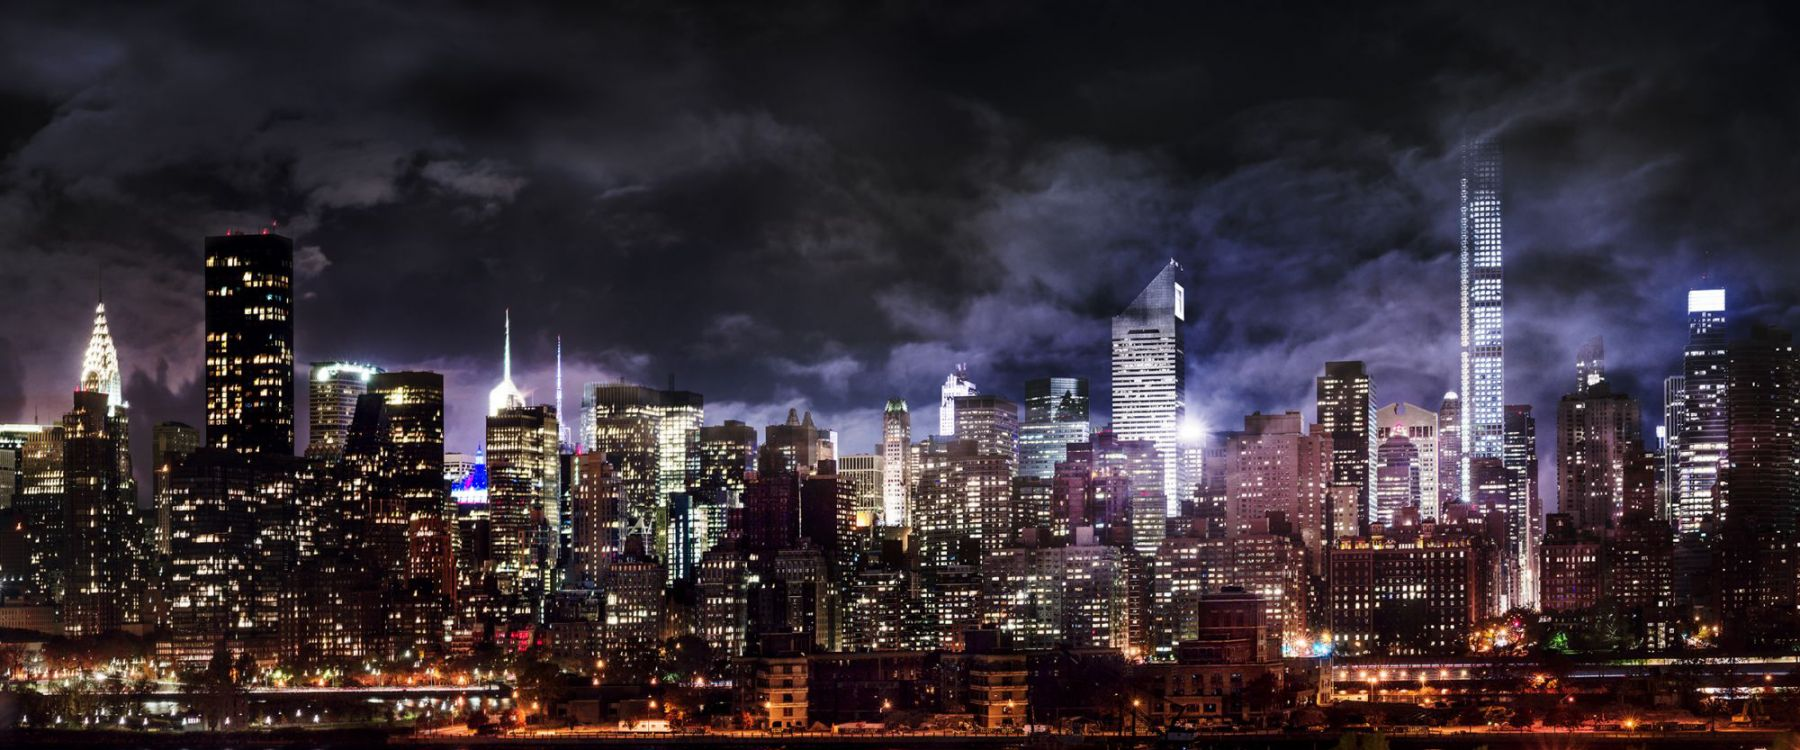 MANHATTAN NIGHTS, Archival Pigment Print